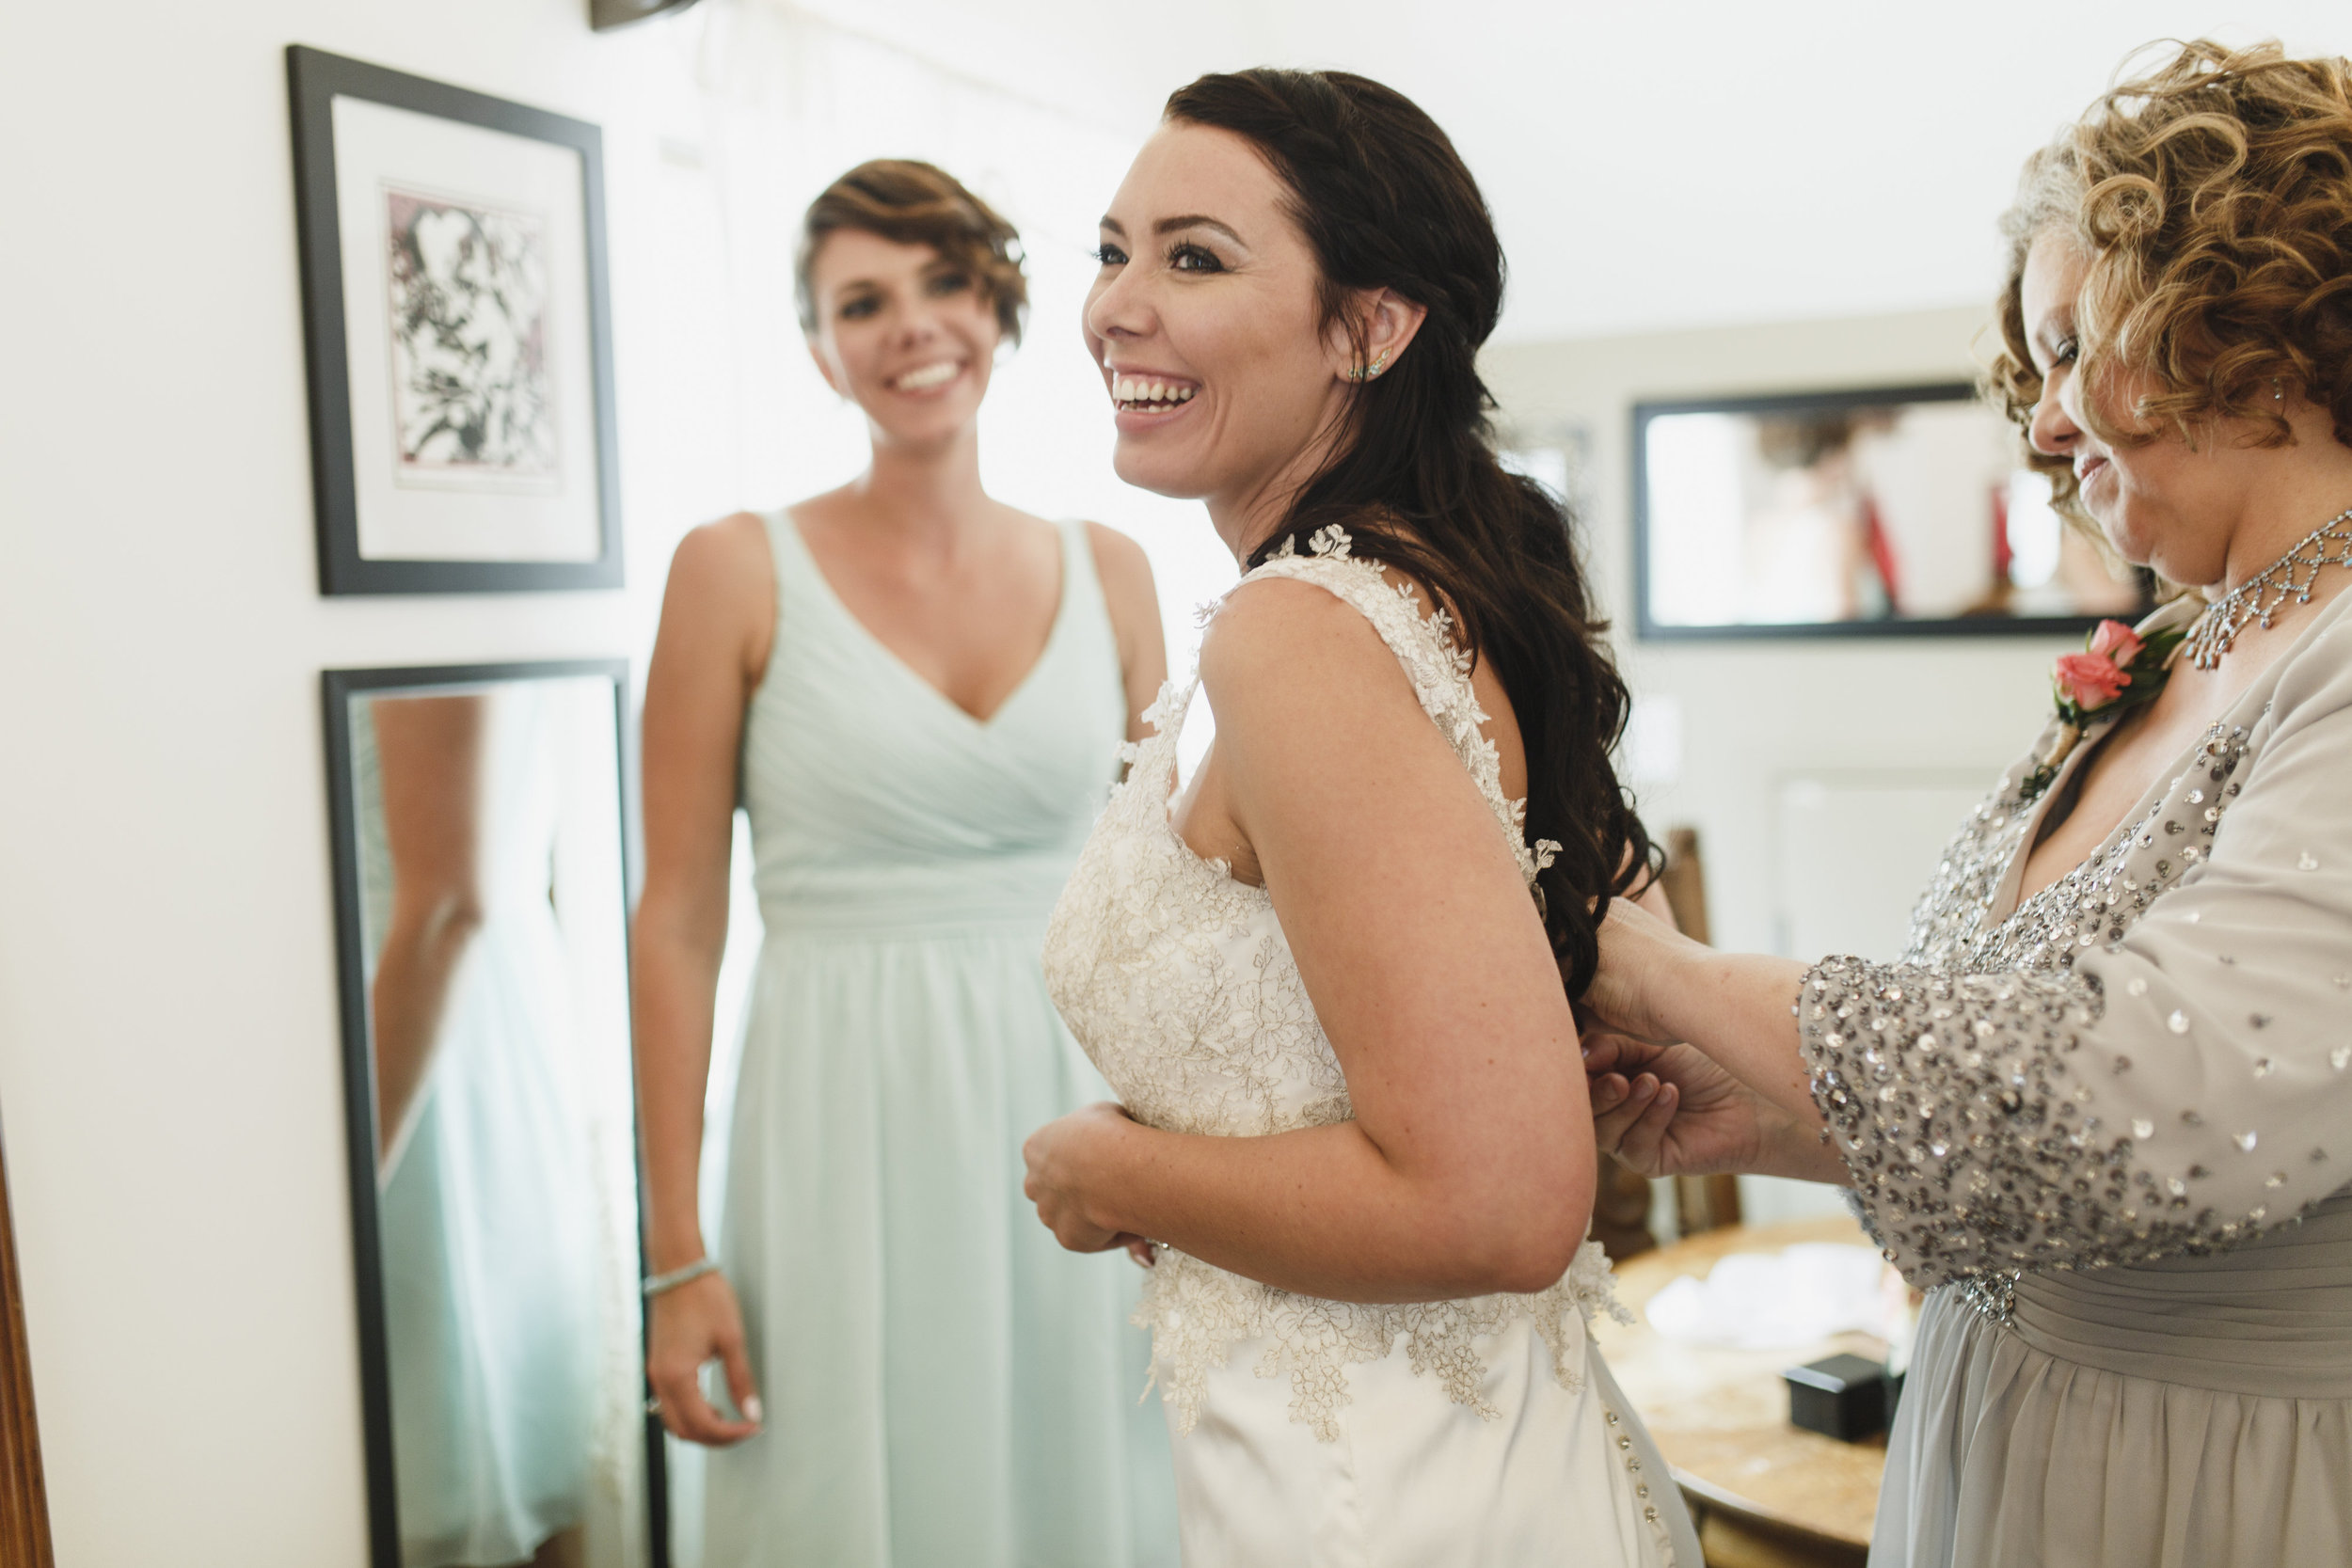 Bride gets ready for her wedding